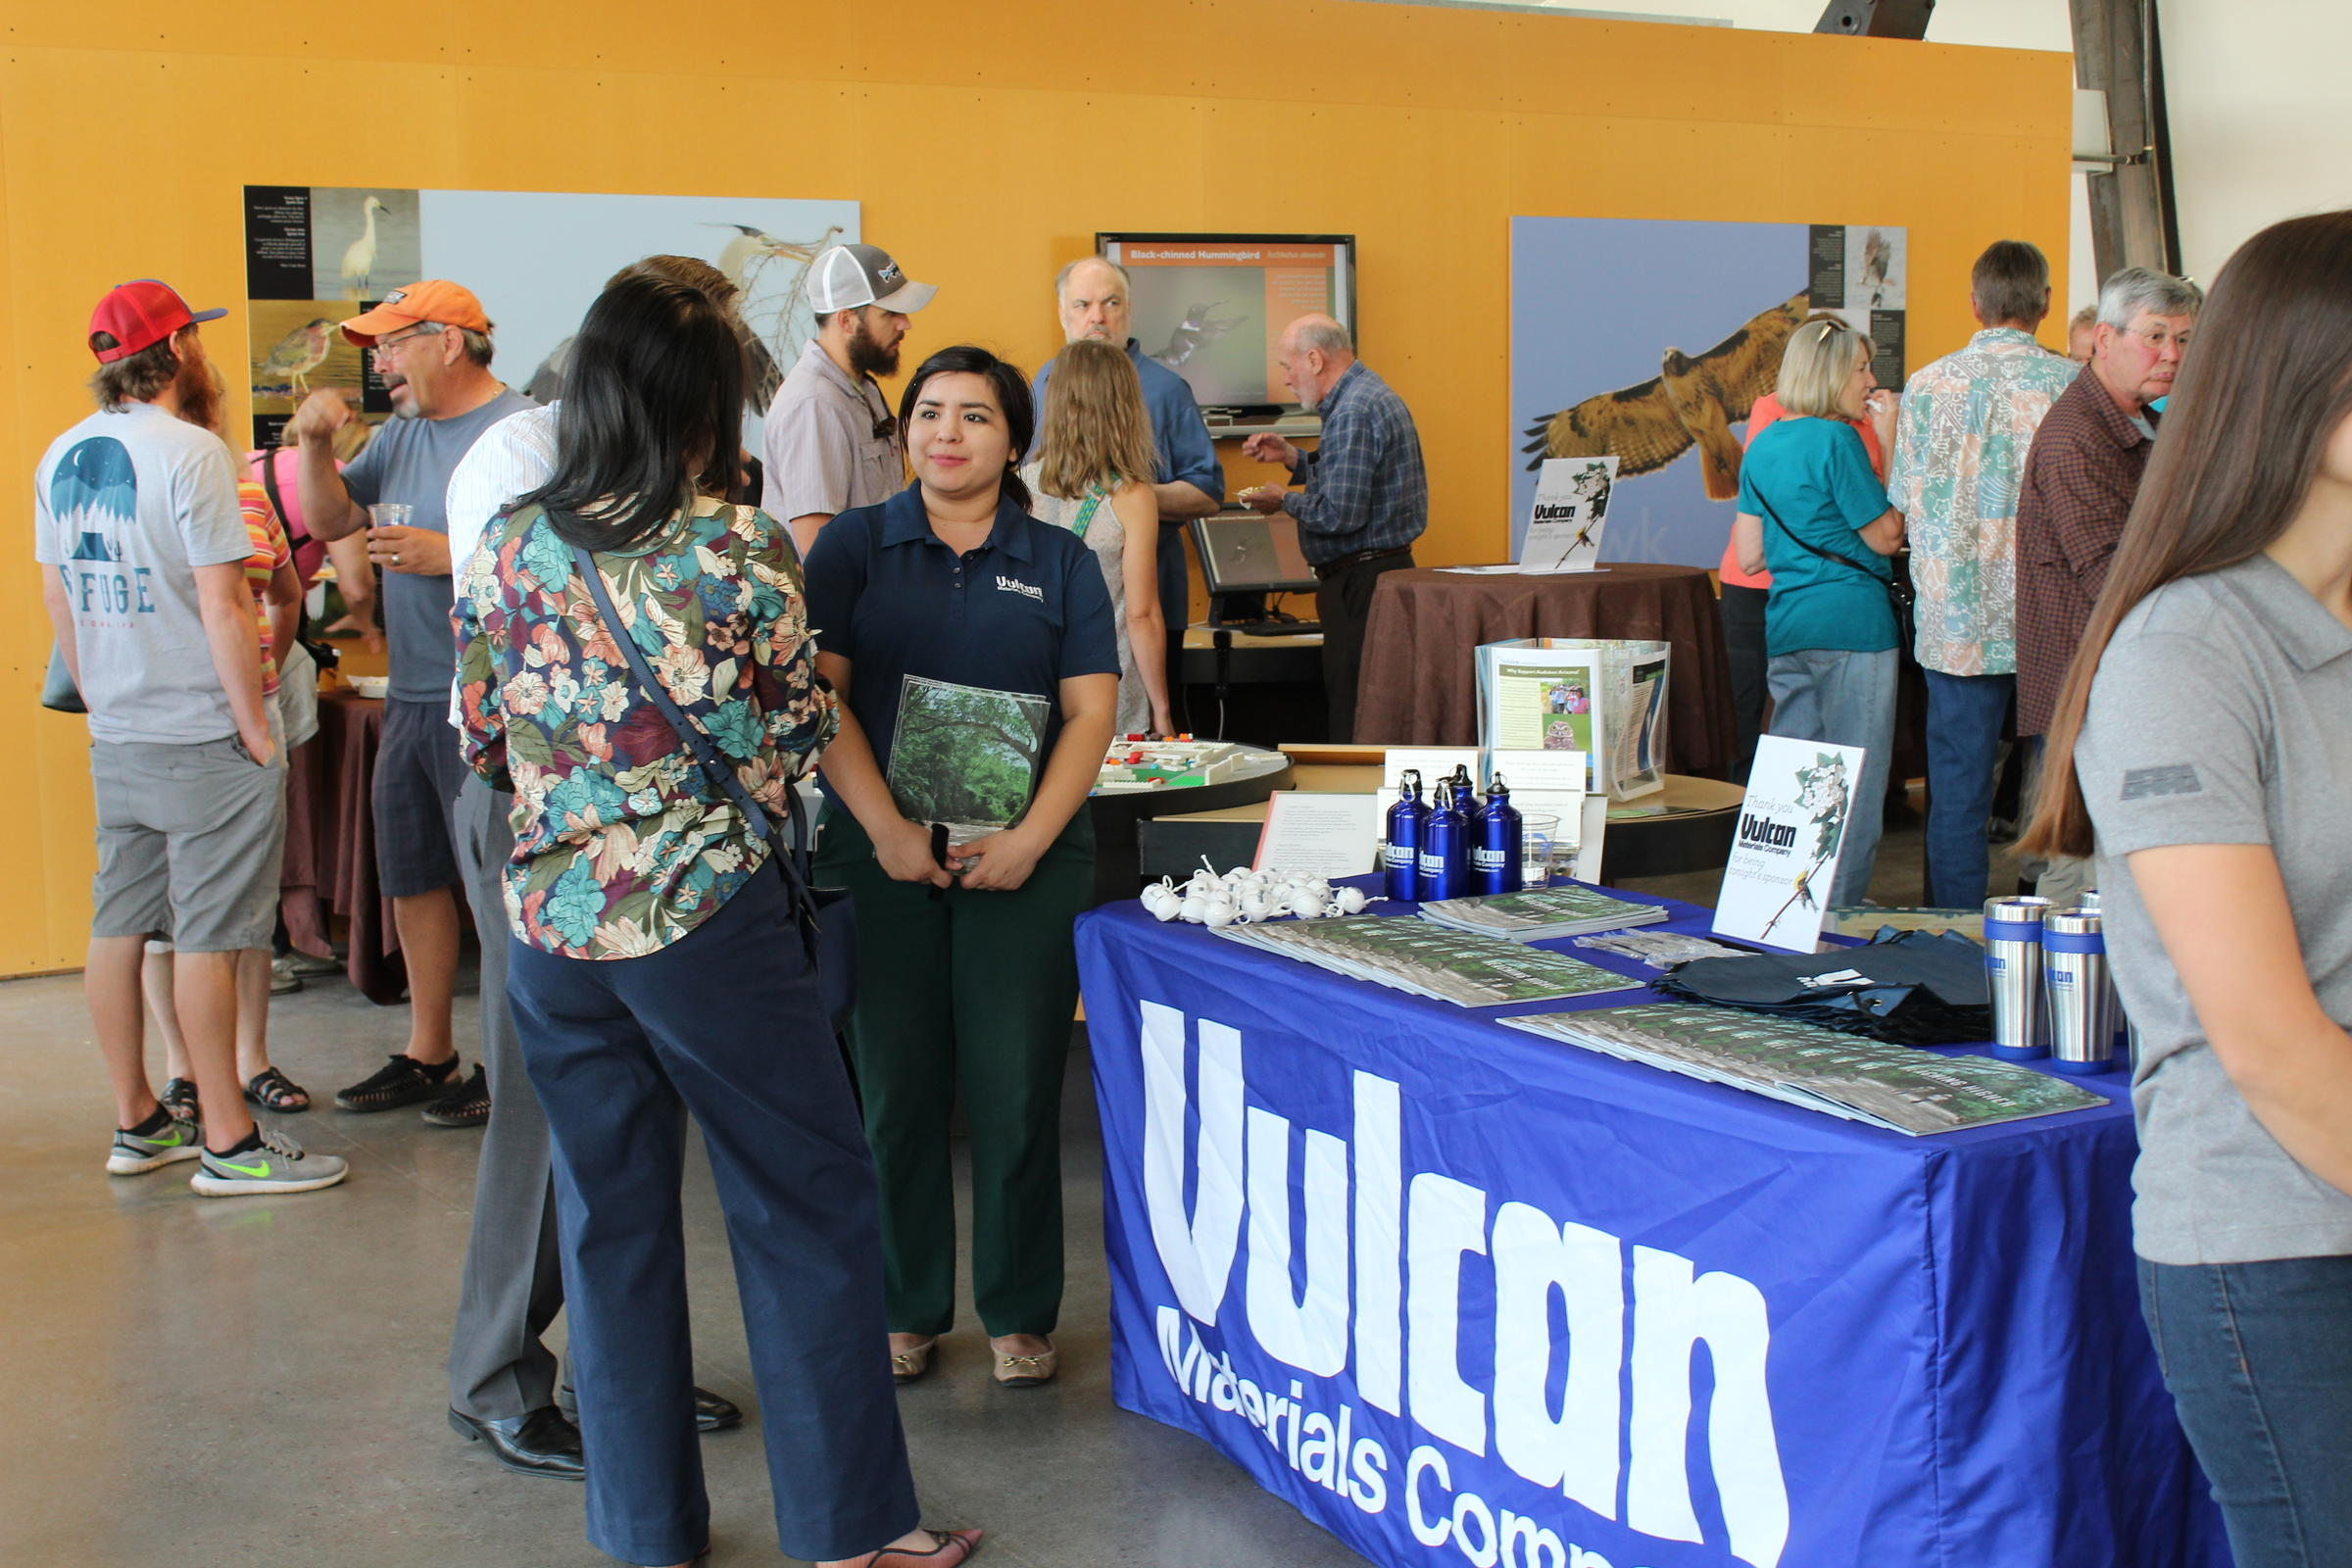 People mingle around the center and interact with a sponsorship booth from Vulcan Materials company during Birds n' Beer.